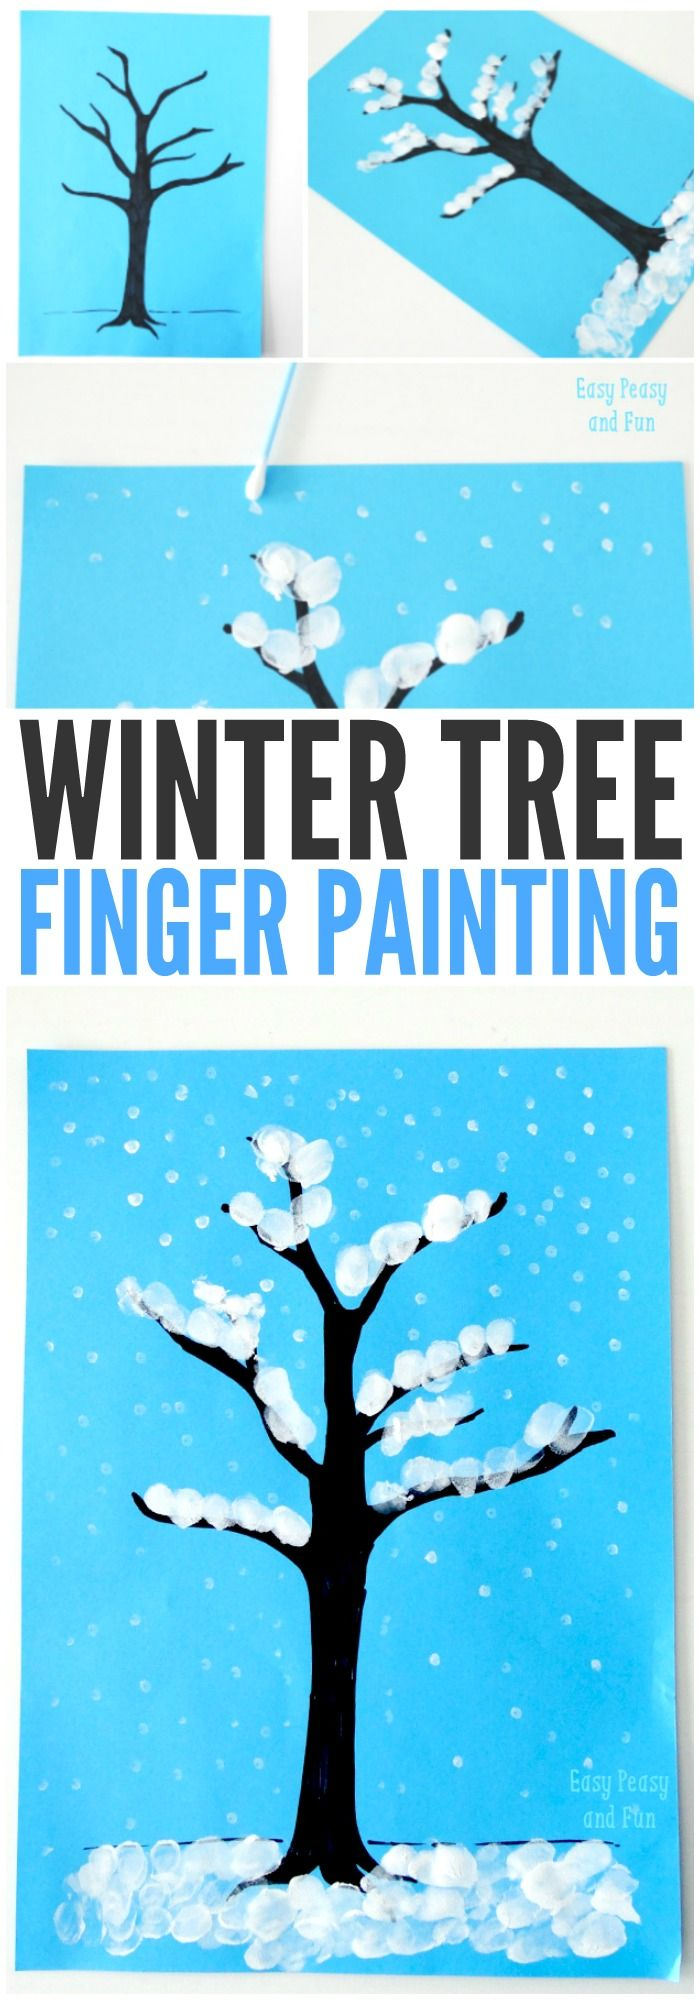 Photo of Winter Tree Finger Painting – Quick Art Project for Kids – Easy Peasy and Fun